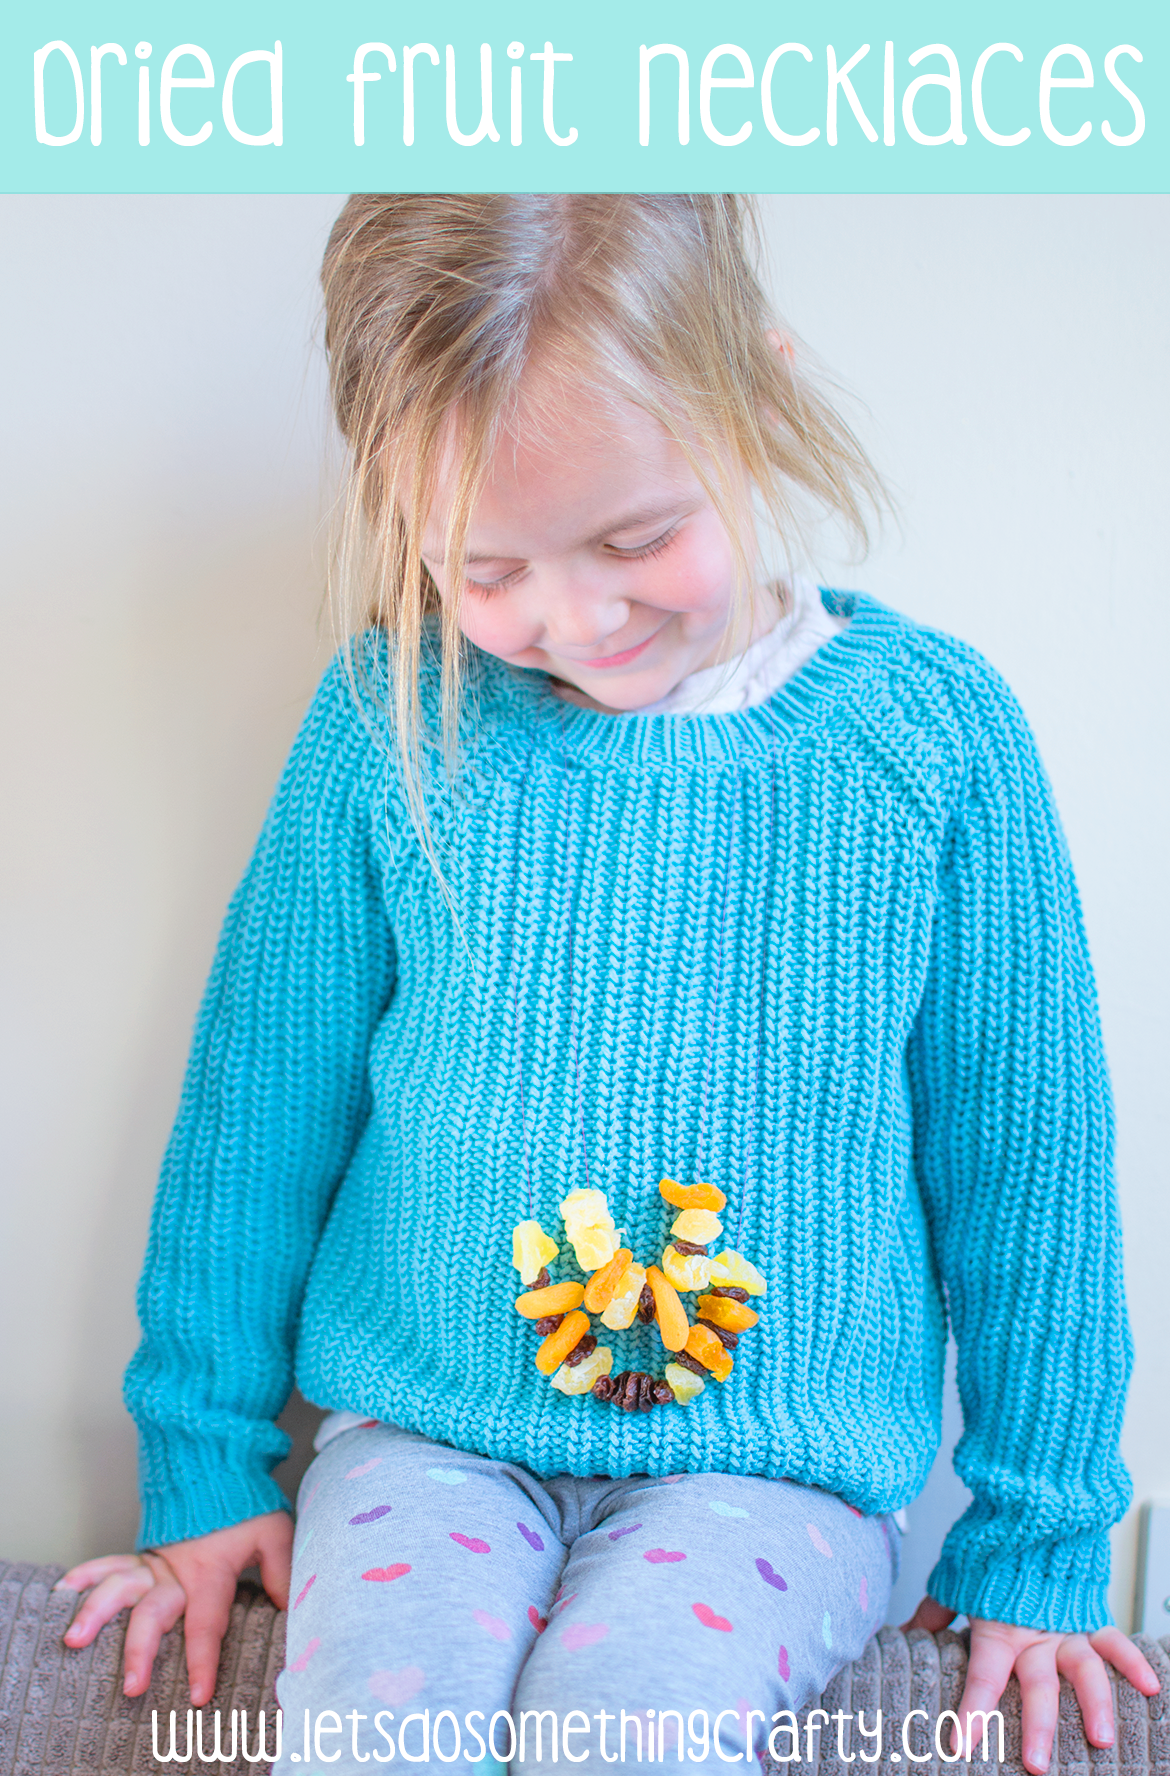 dried fruit necklaces healthy alternative to candy necklace